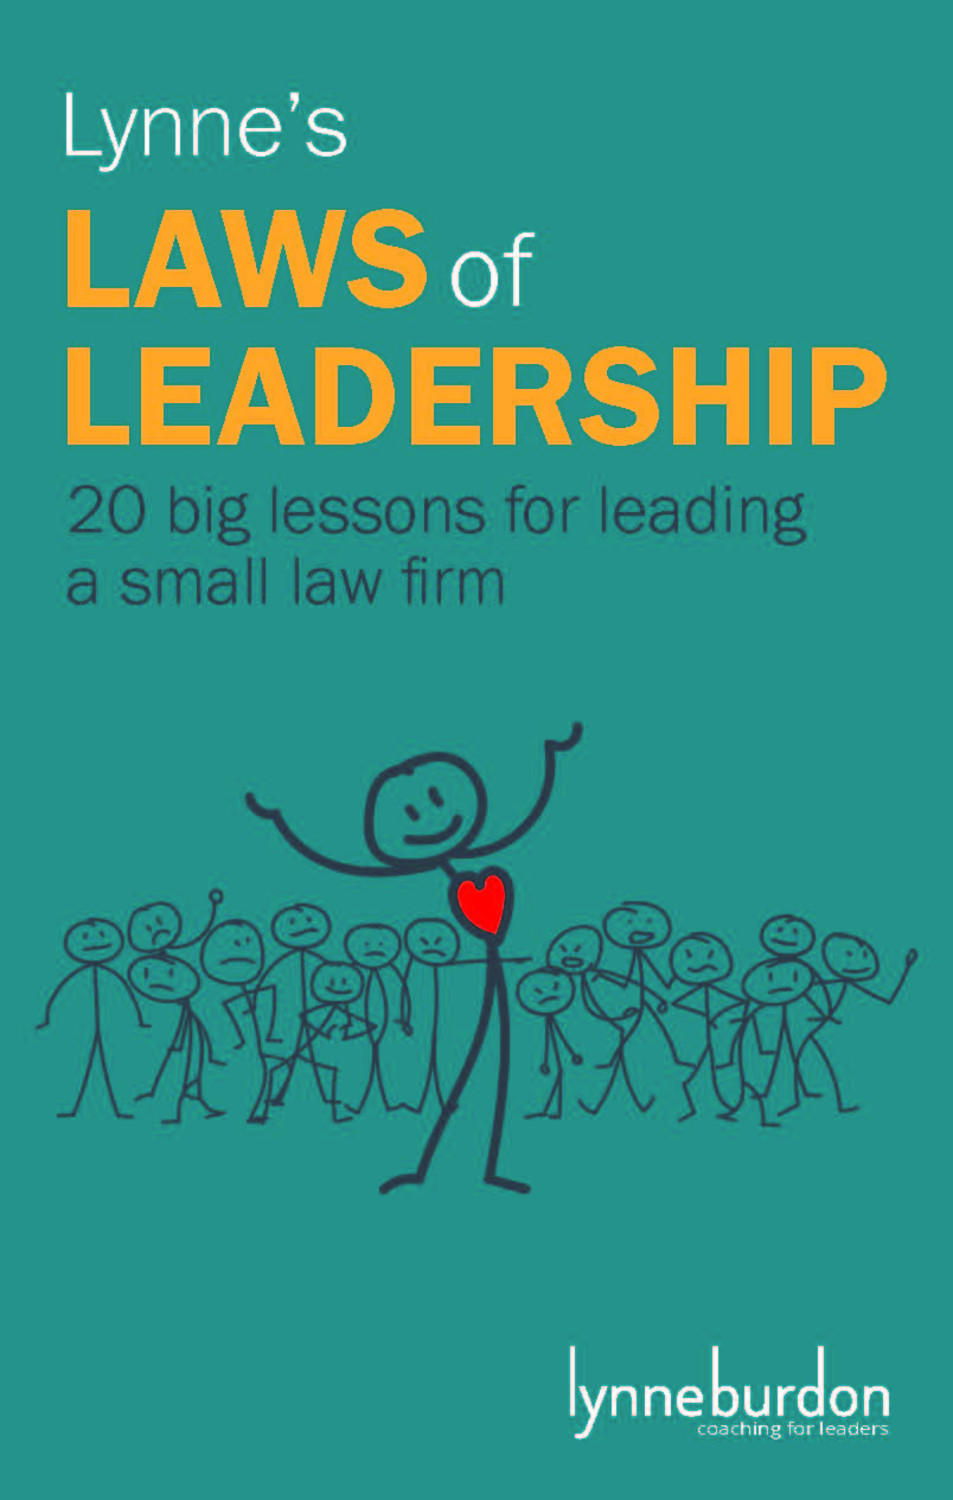 Book cover for Lynne's Laws of Leadership:  20 big lessons for leading a small law firm a book by Lynne  Burdon